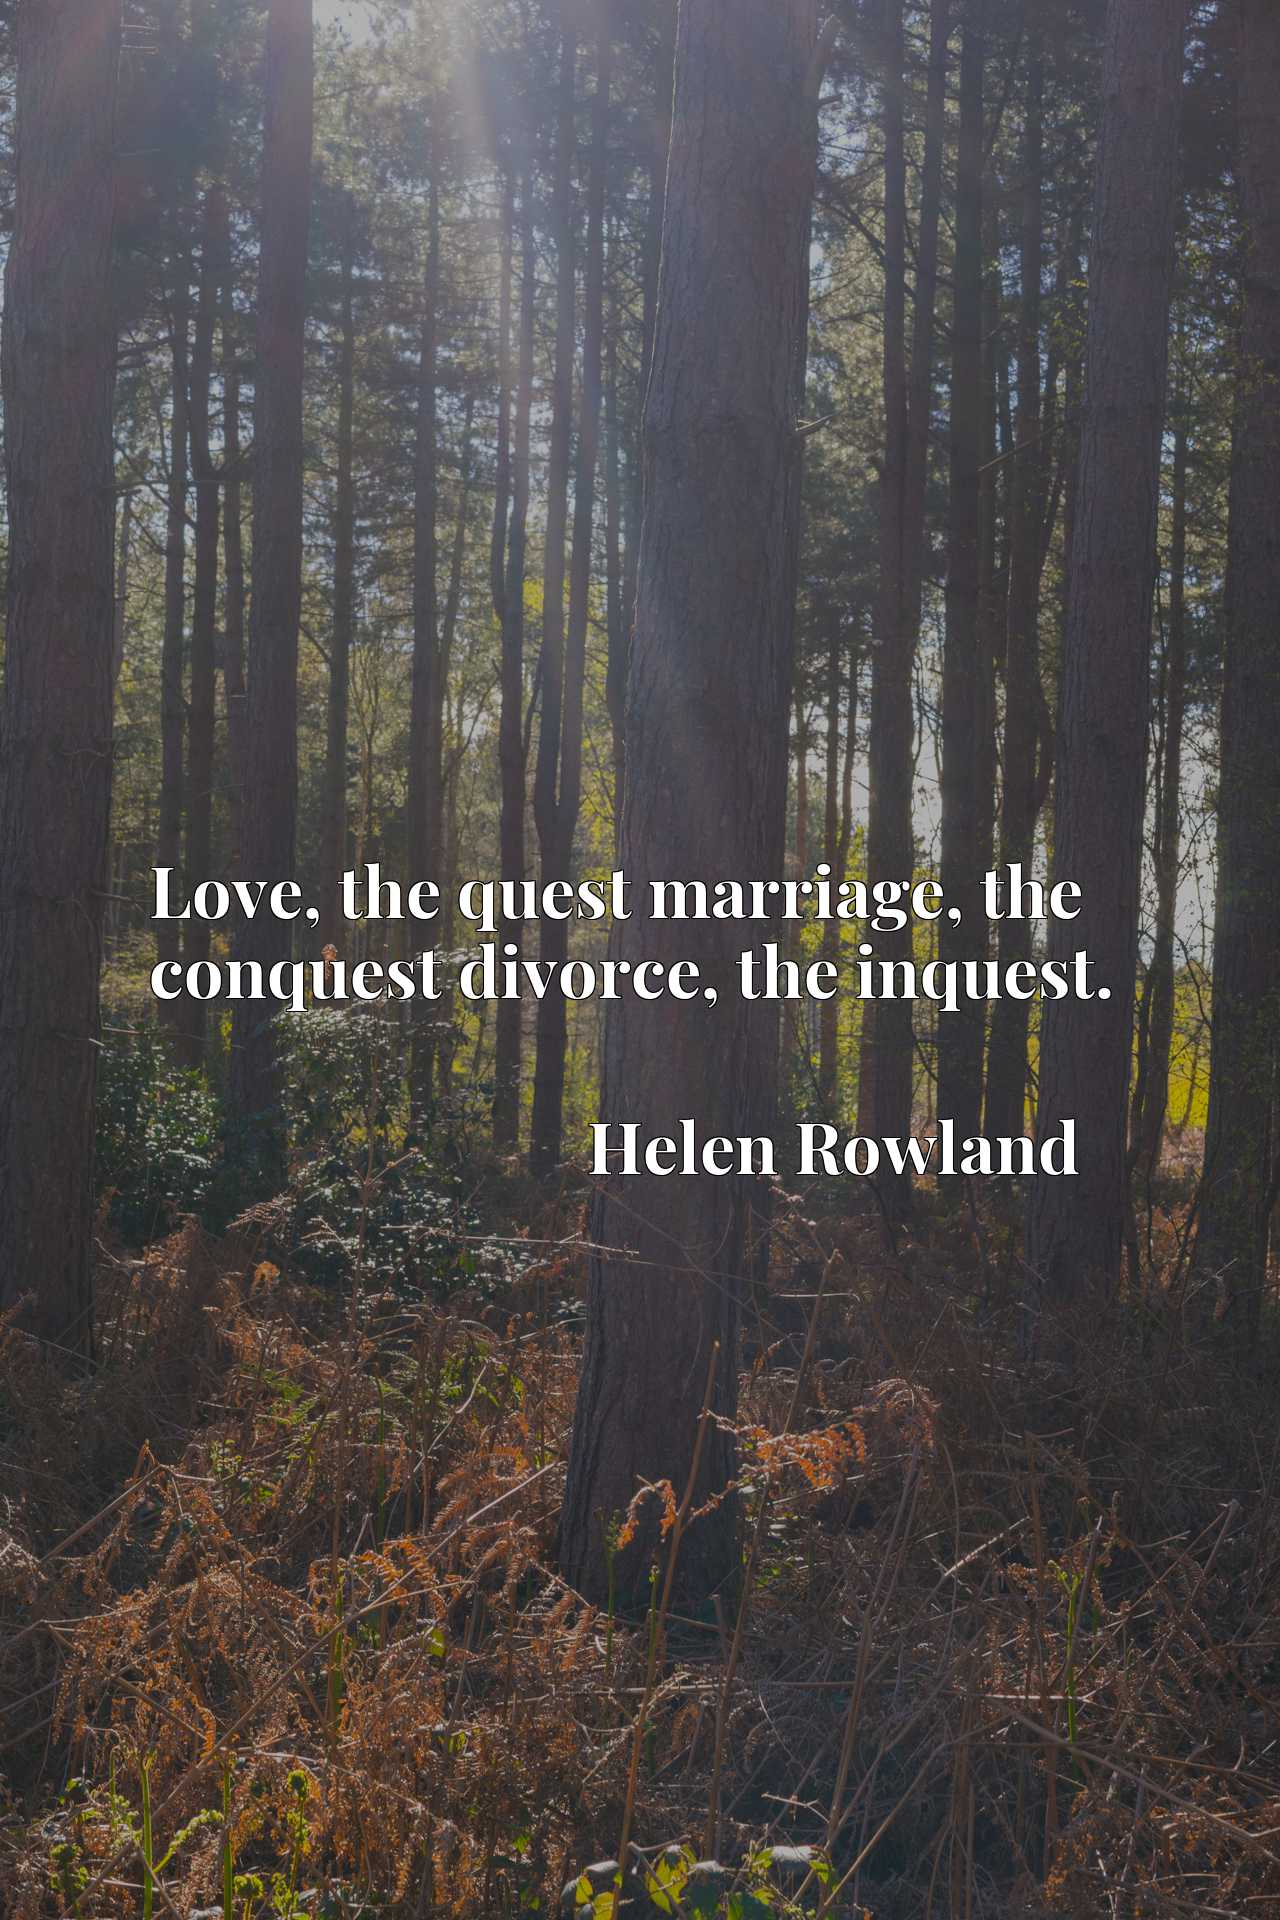 Love, the quest marriage, the conquest divorce, the inquest.